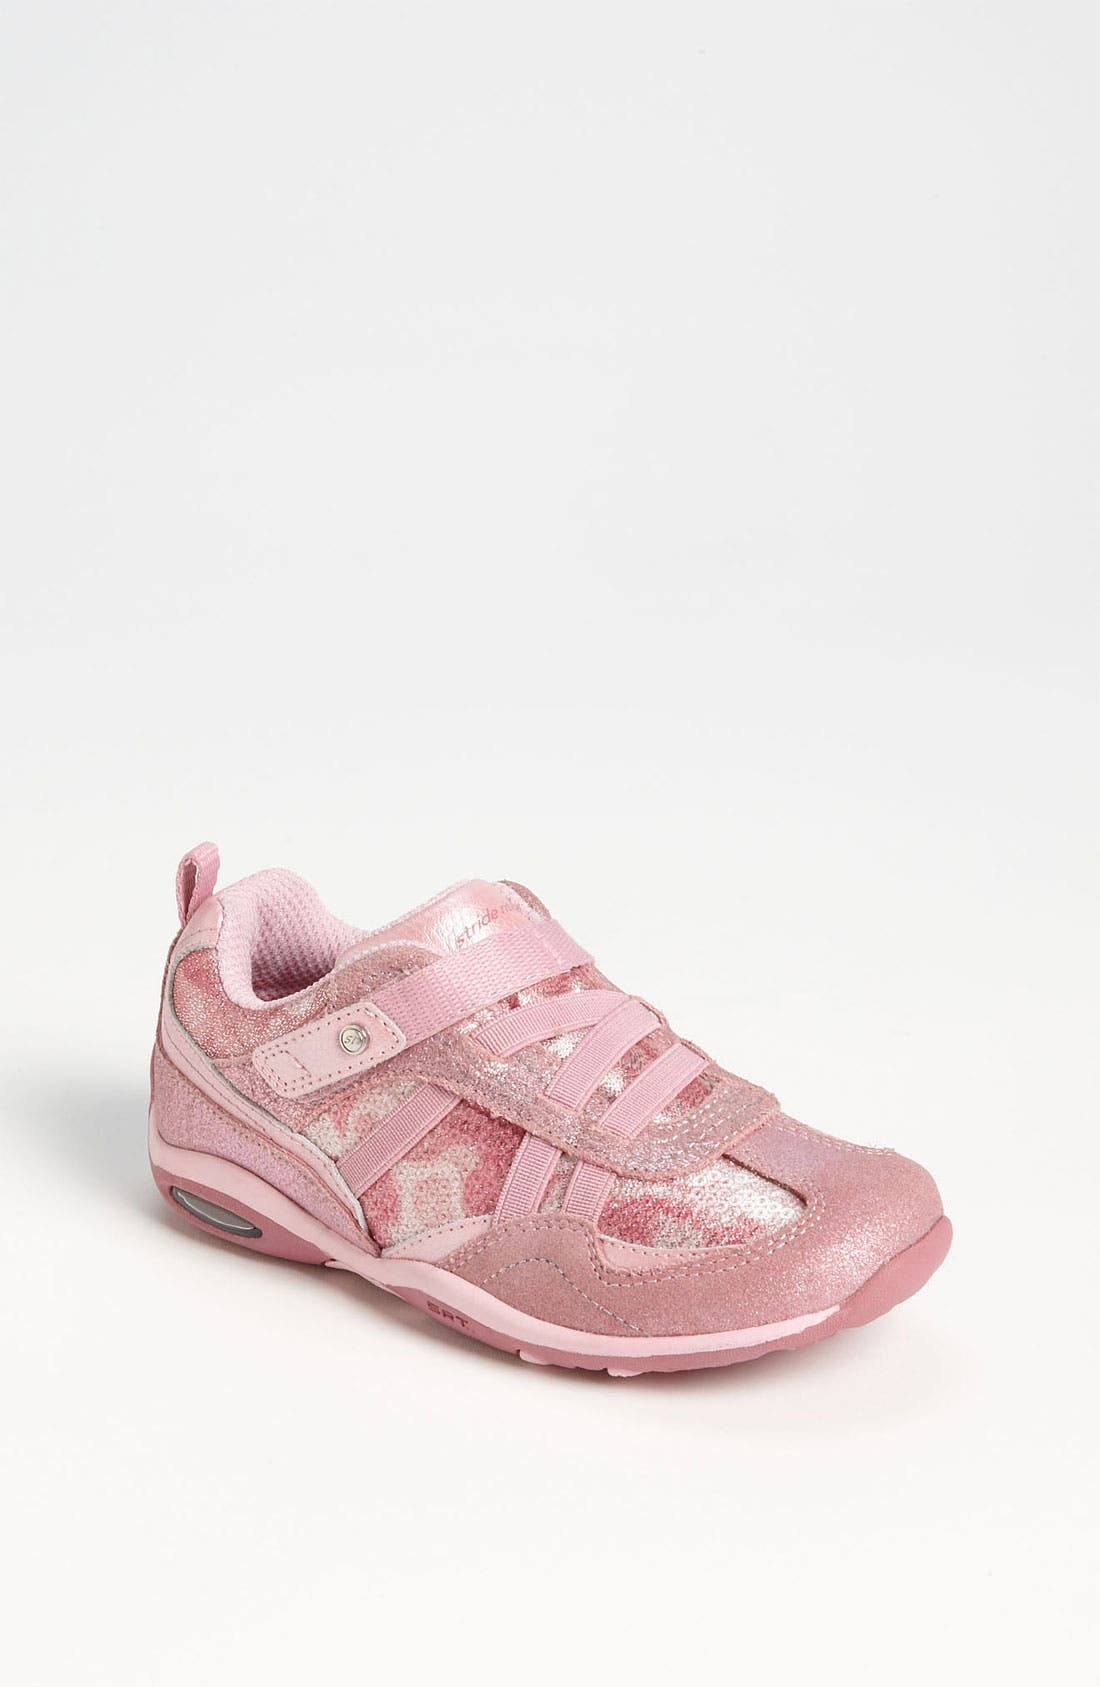 Main Image - Stride Rite 'Brandi' Sneaker (Toddler & Little Kid)